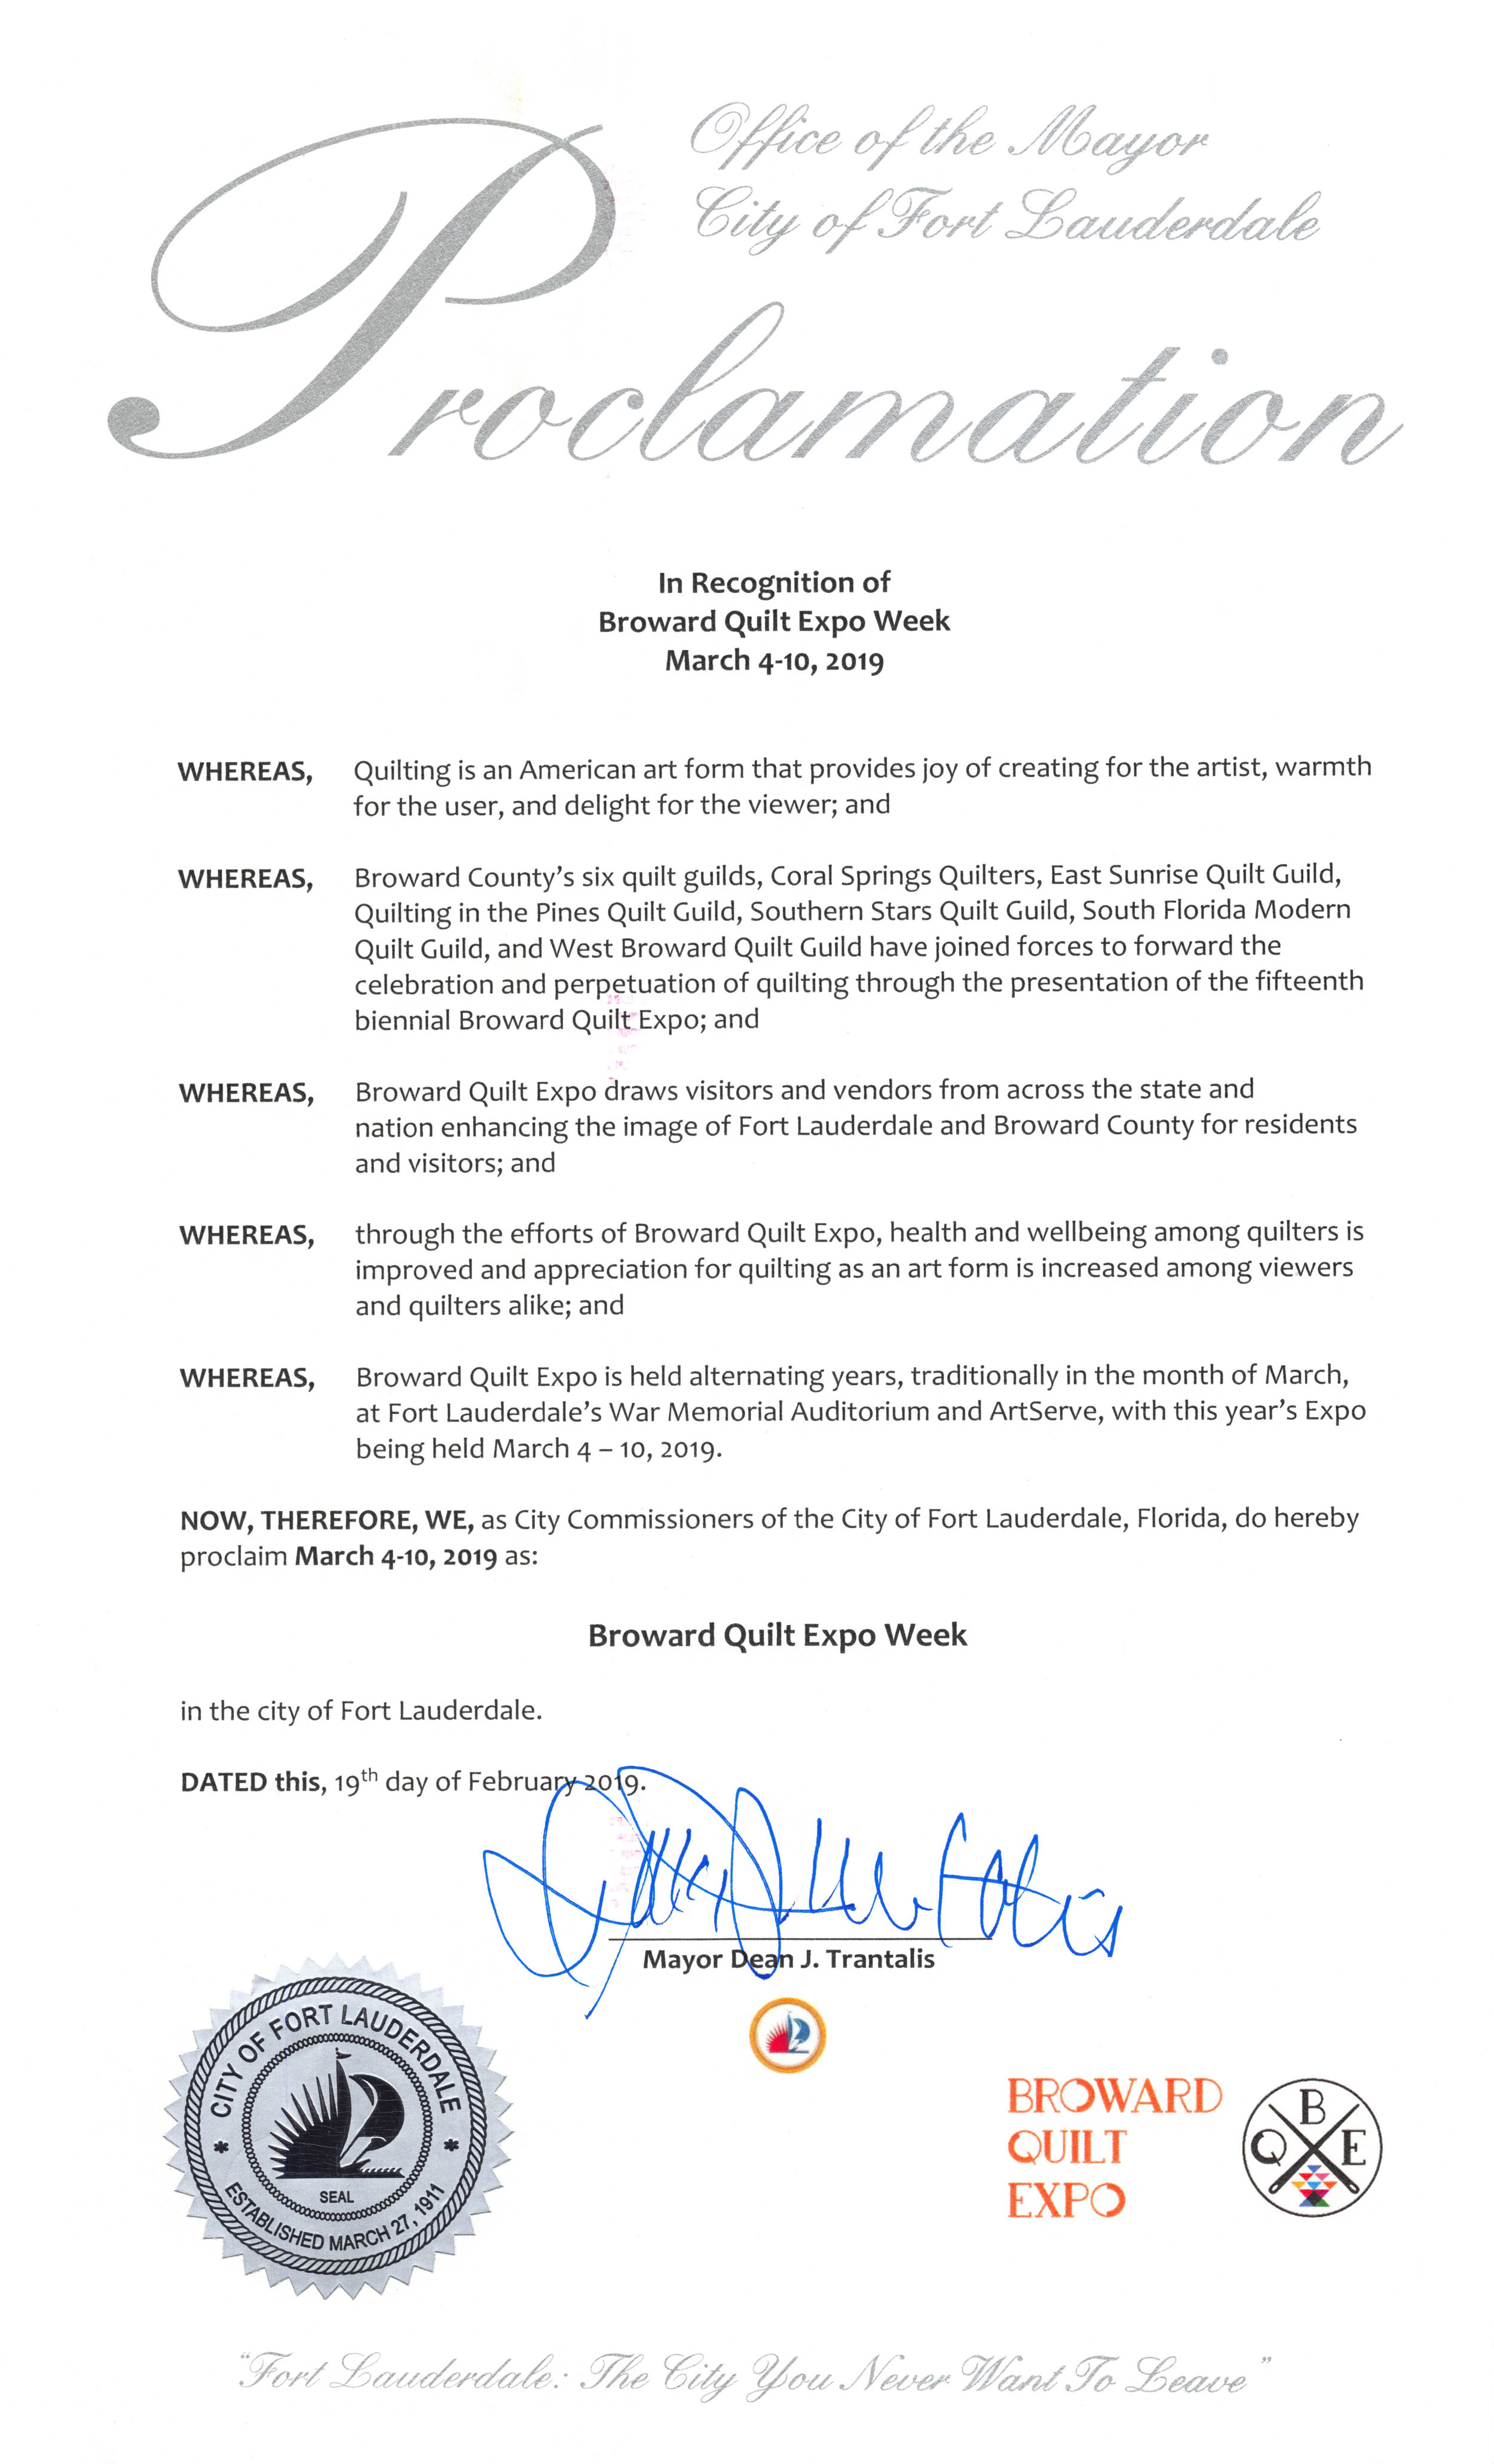 The Proclamation, signed by Mayor Dean Trantalis